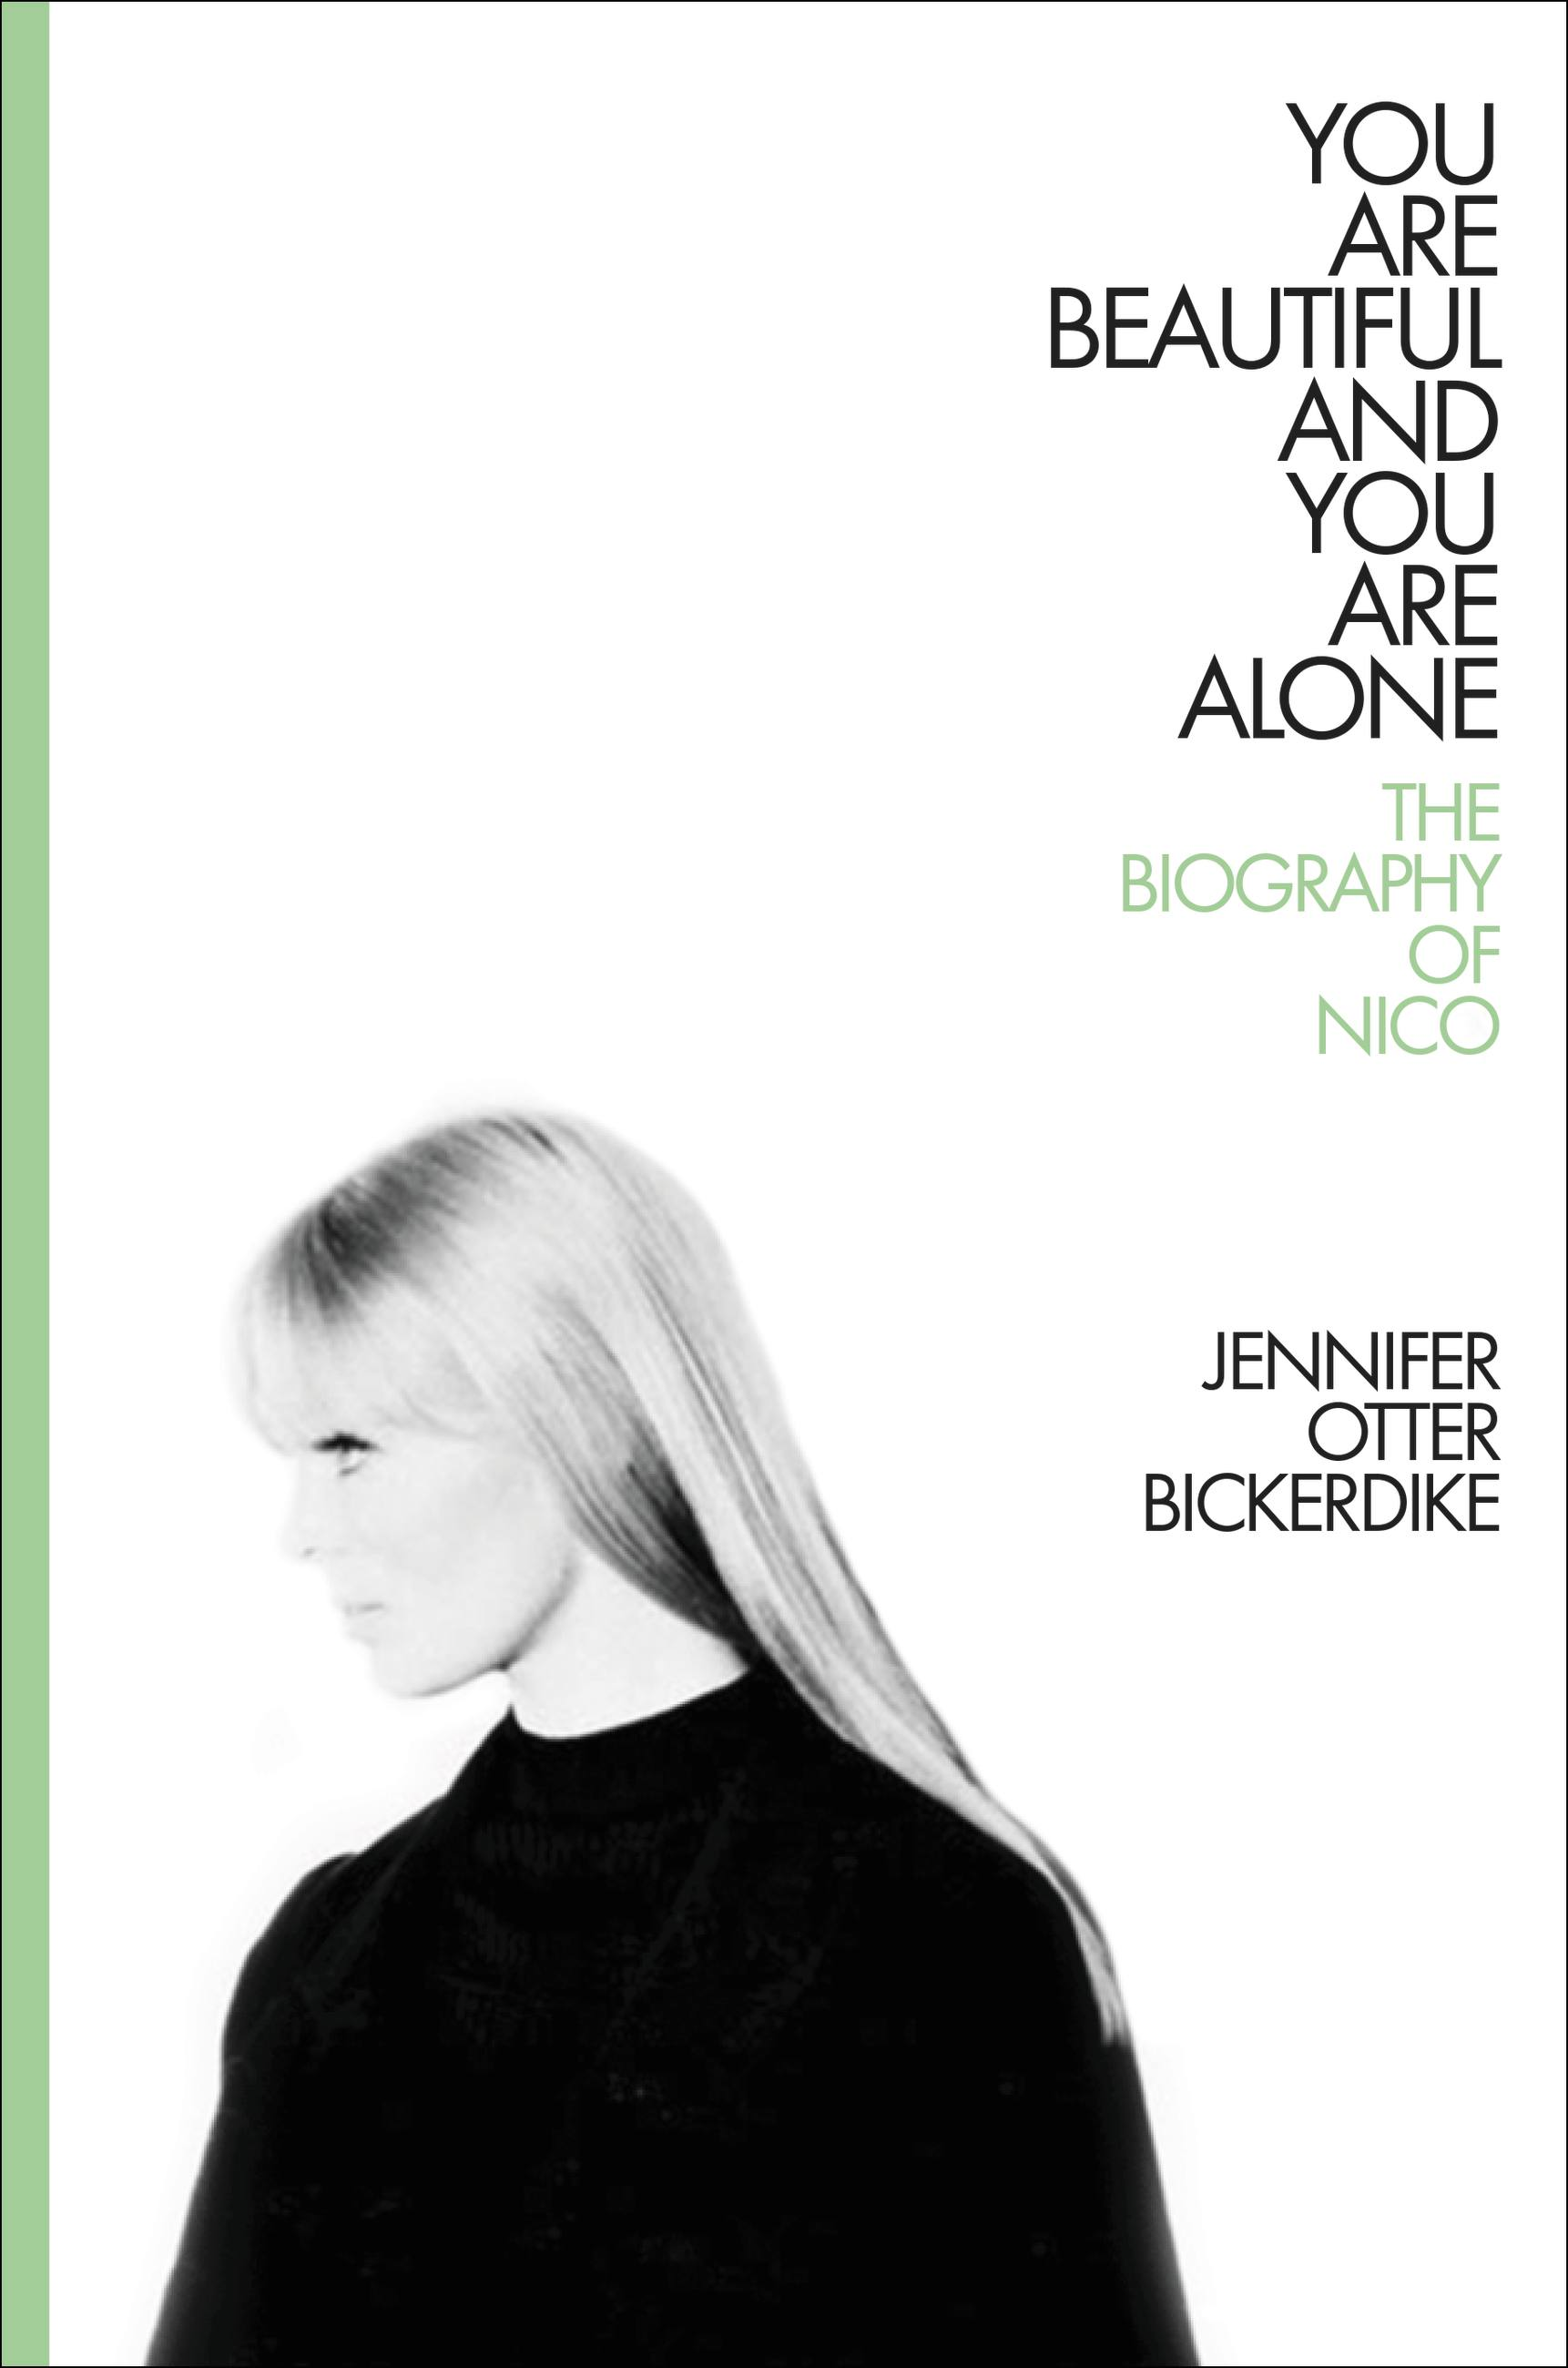 You Are Beautiful and You Are Alone The Biography of Nico